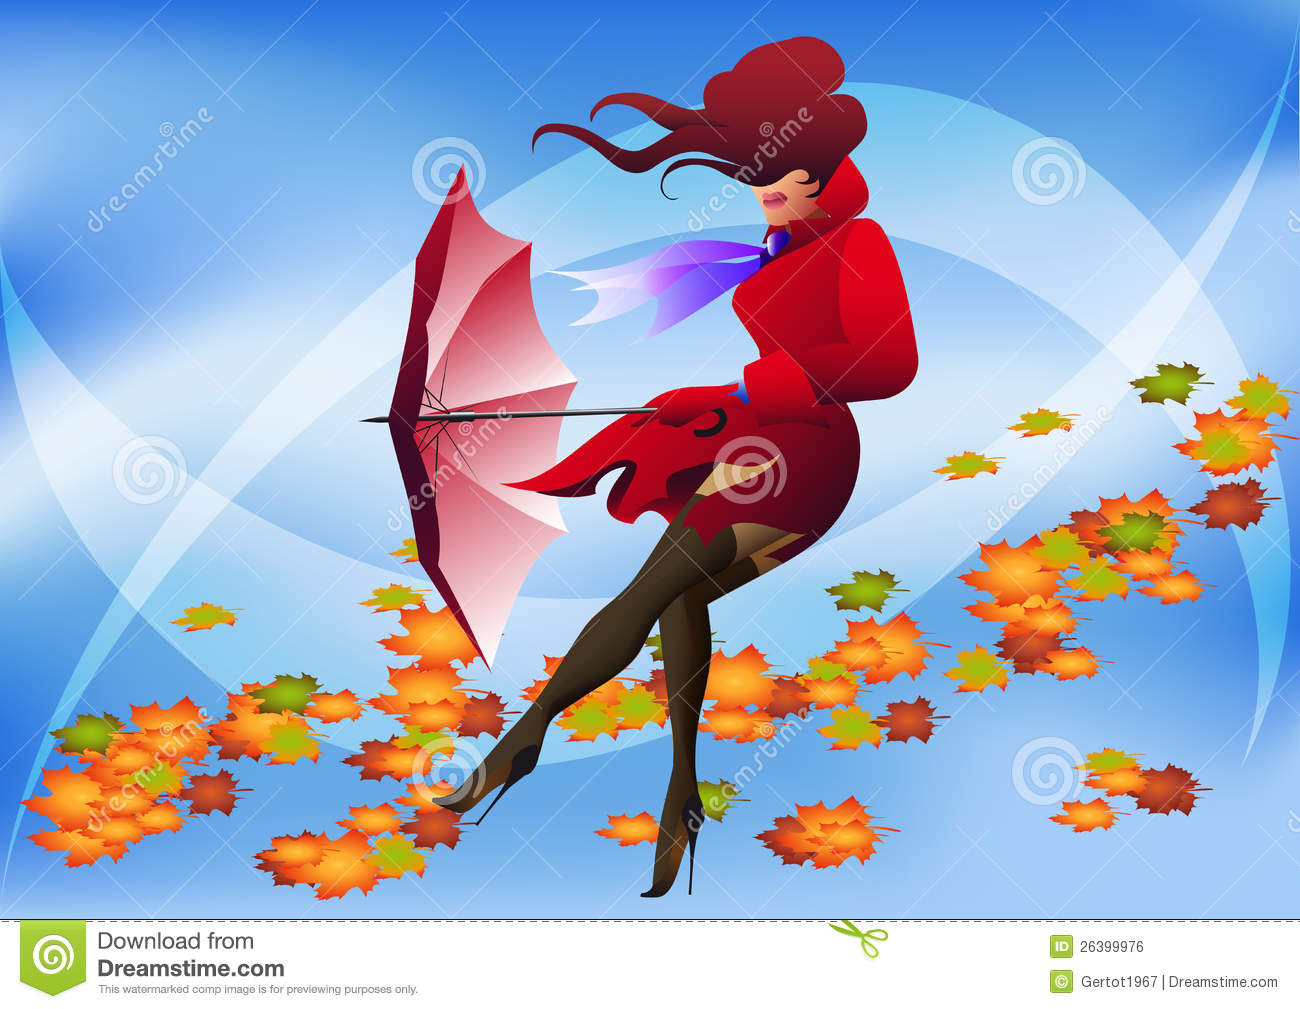 Windy Day Royalty Free Stock Image - Image: 26399976